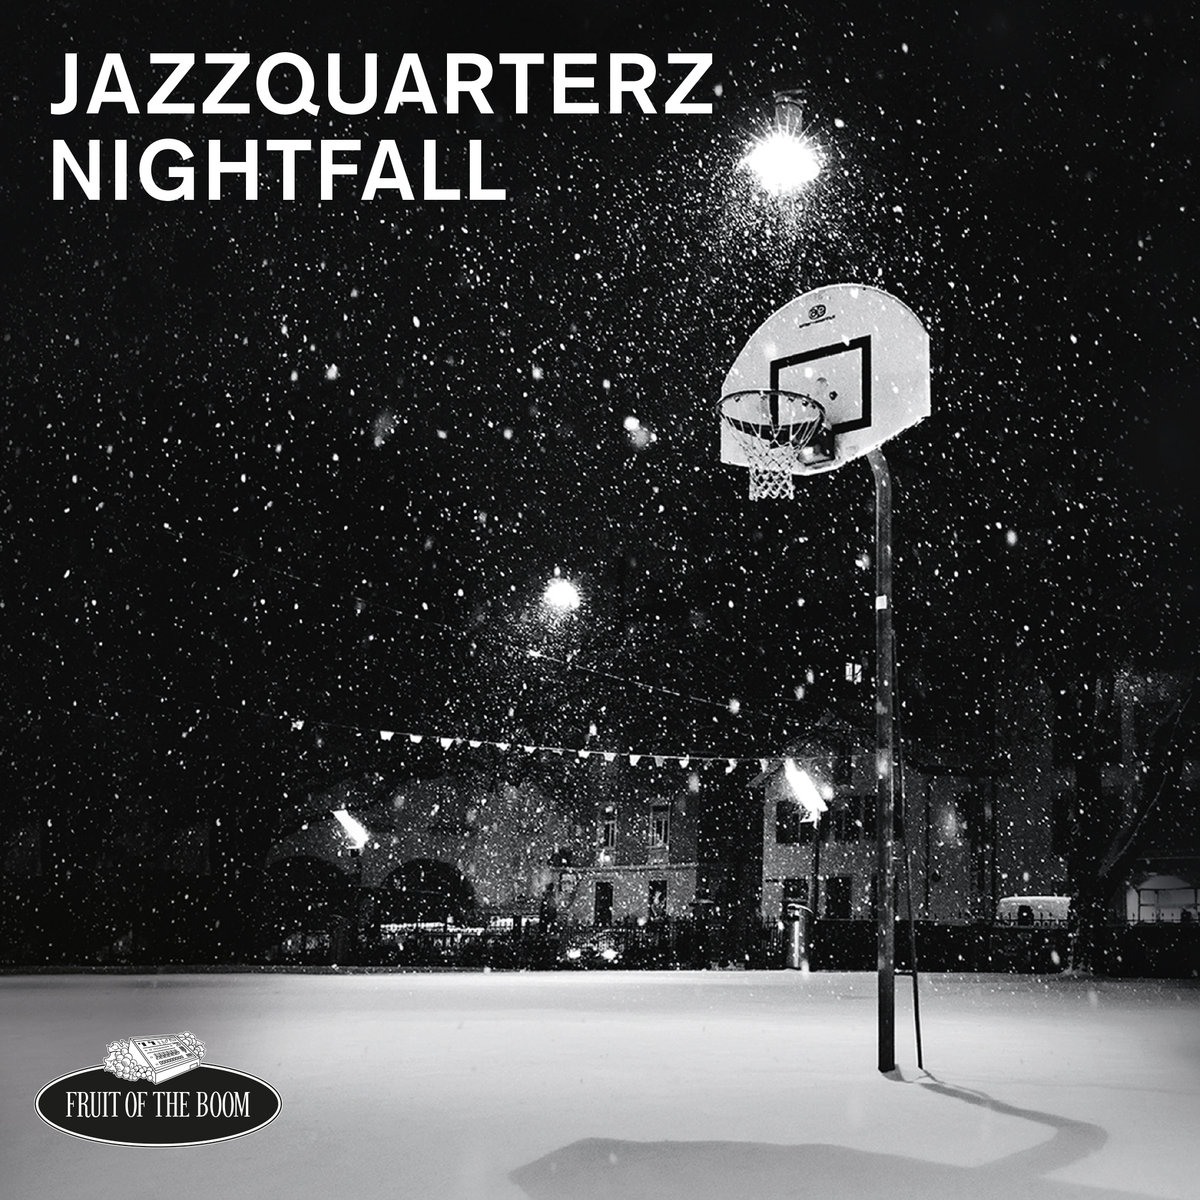 Nightfall_jazzquarterz